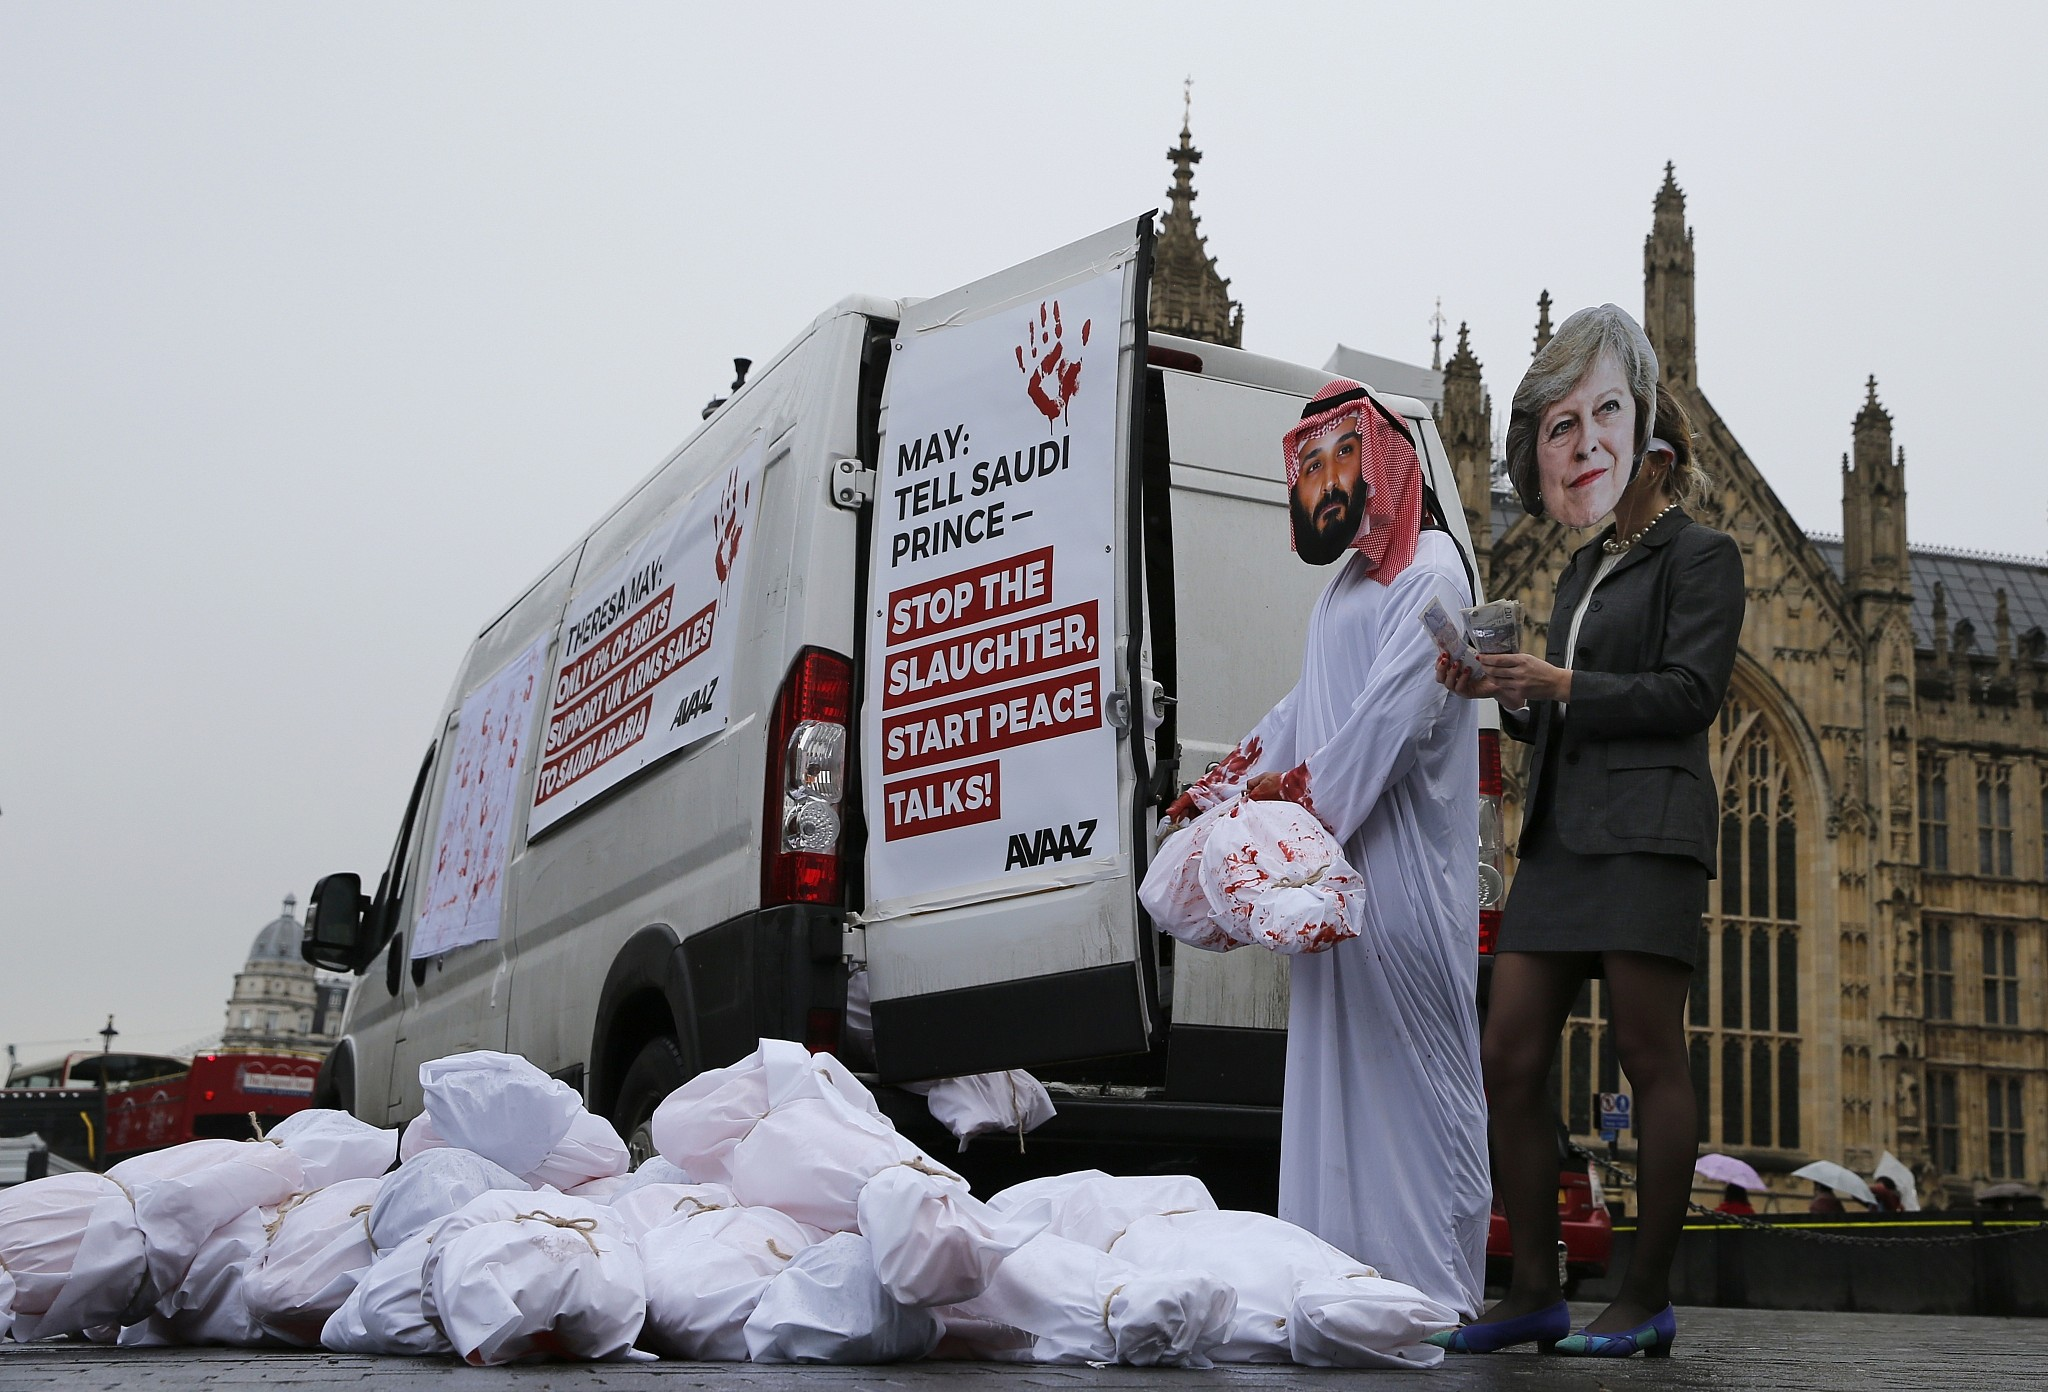 Saudi Crown Prince Greeted In Britain With Pomp Protests The